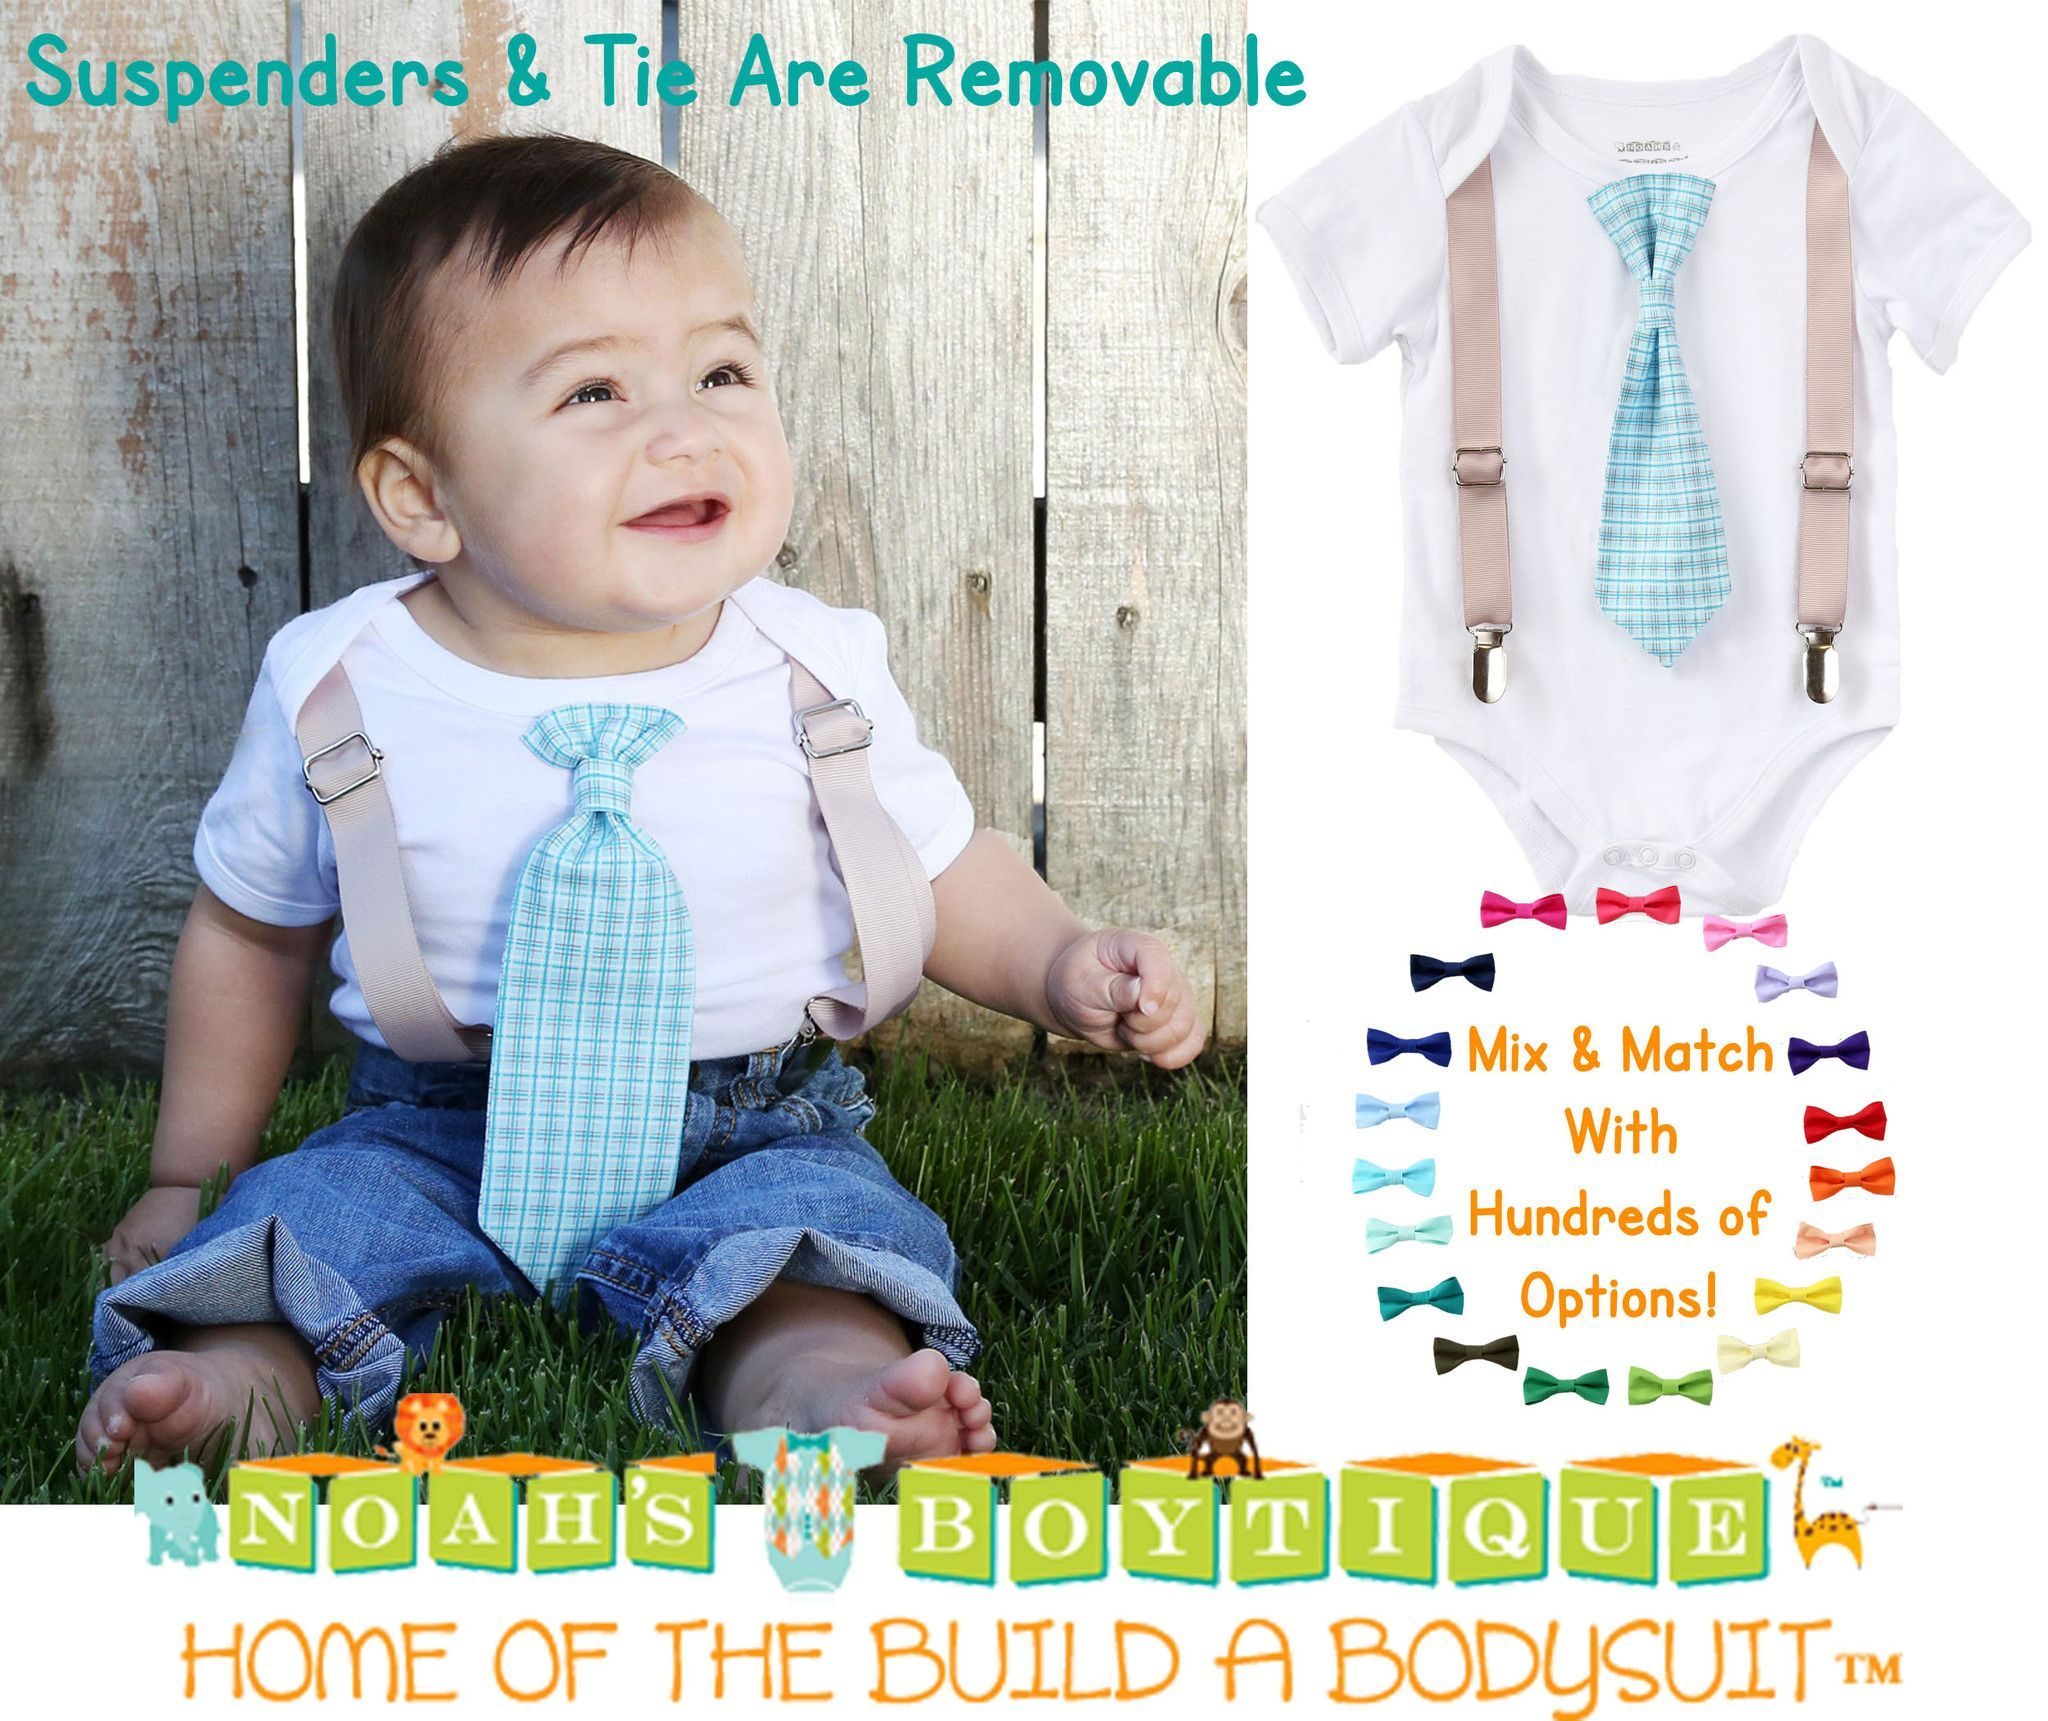 f0defa8cc61c Baby Boy Suspender Outfit - Light Blue Plaid Tie - Tan Suspenders - Baby Boy  Clothes - Toddler - Tie Outfit - Baby Ties - Spring - Wedding - Noah's  Boytique